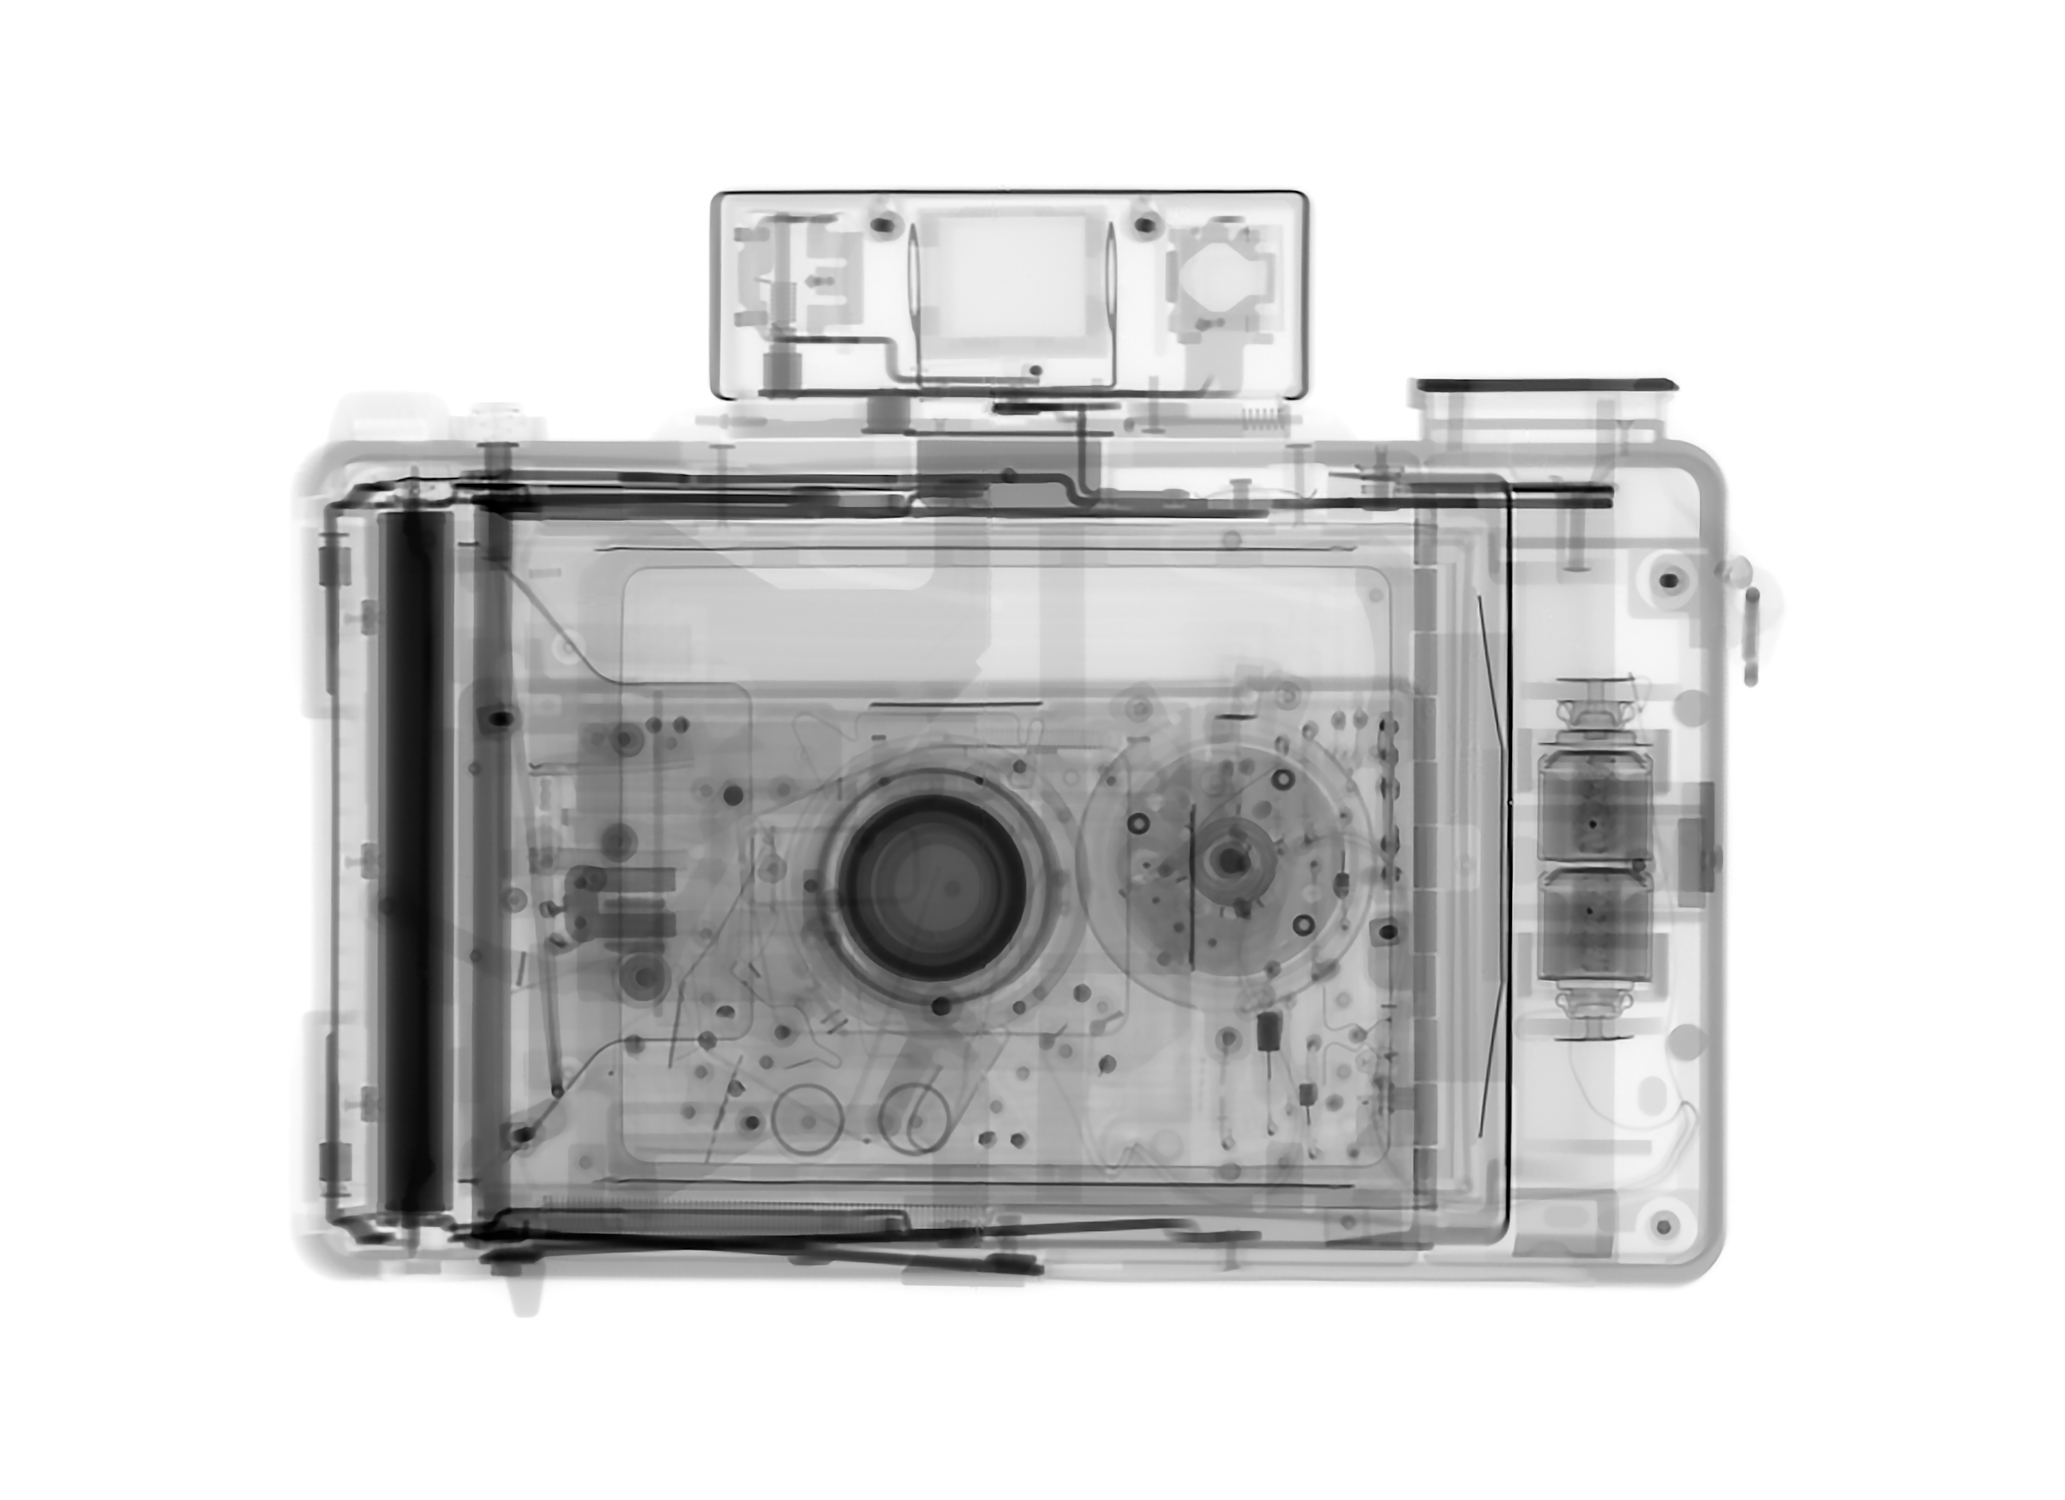 """""""Polaroid 440"""" by Kent Krugh, 13x19in, x-ray archival pigment print (2016), $400 